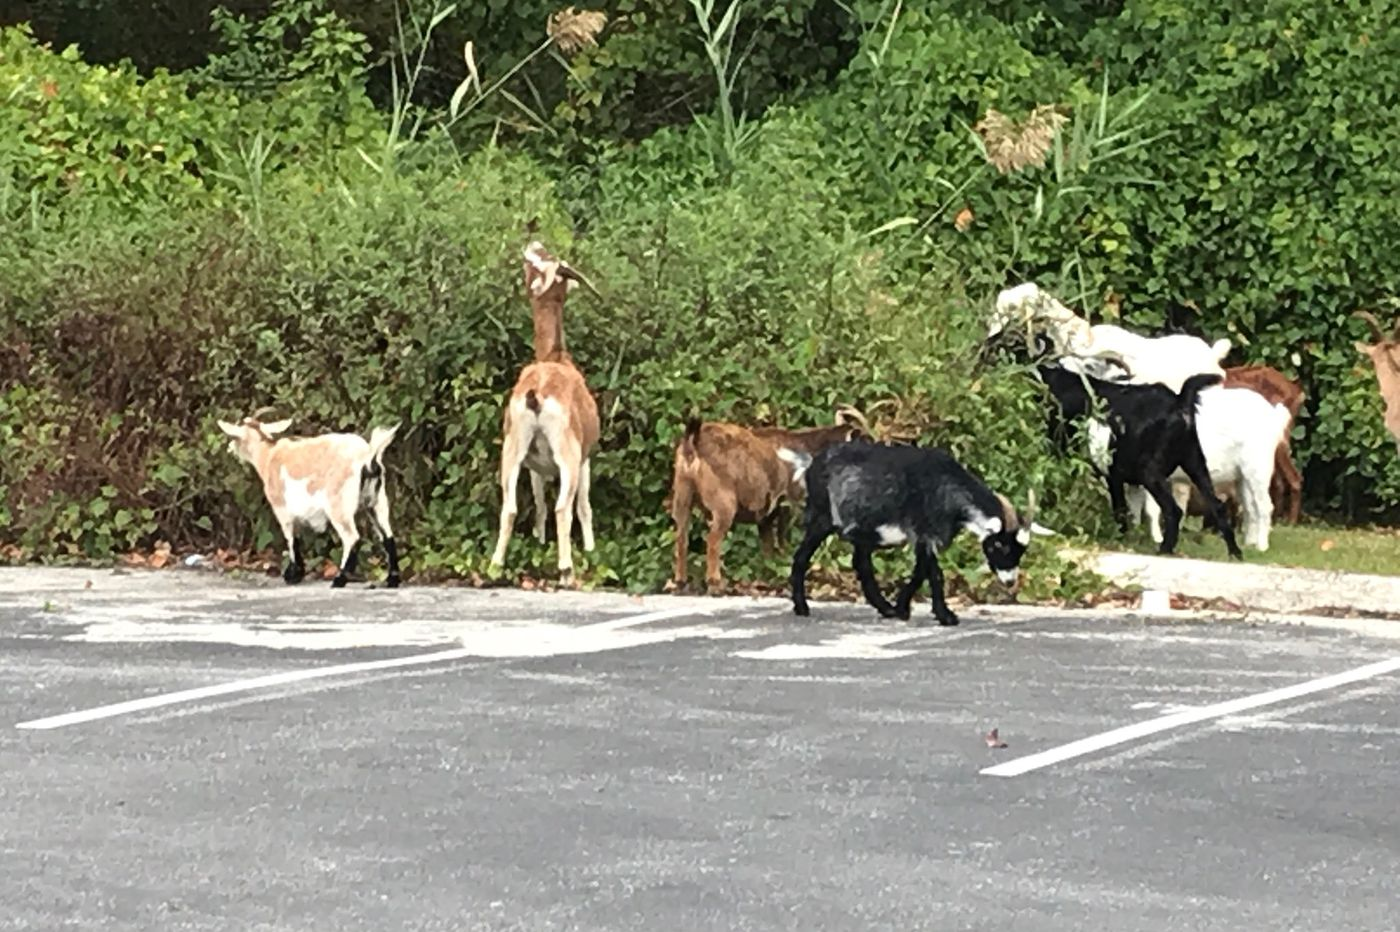 Hungry goats returned to farm after roaming around Chester County township